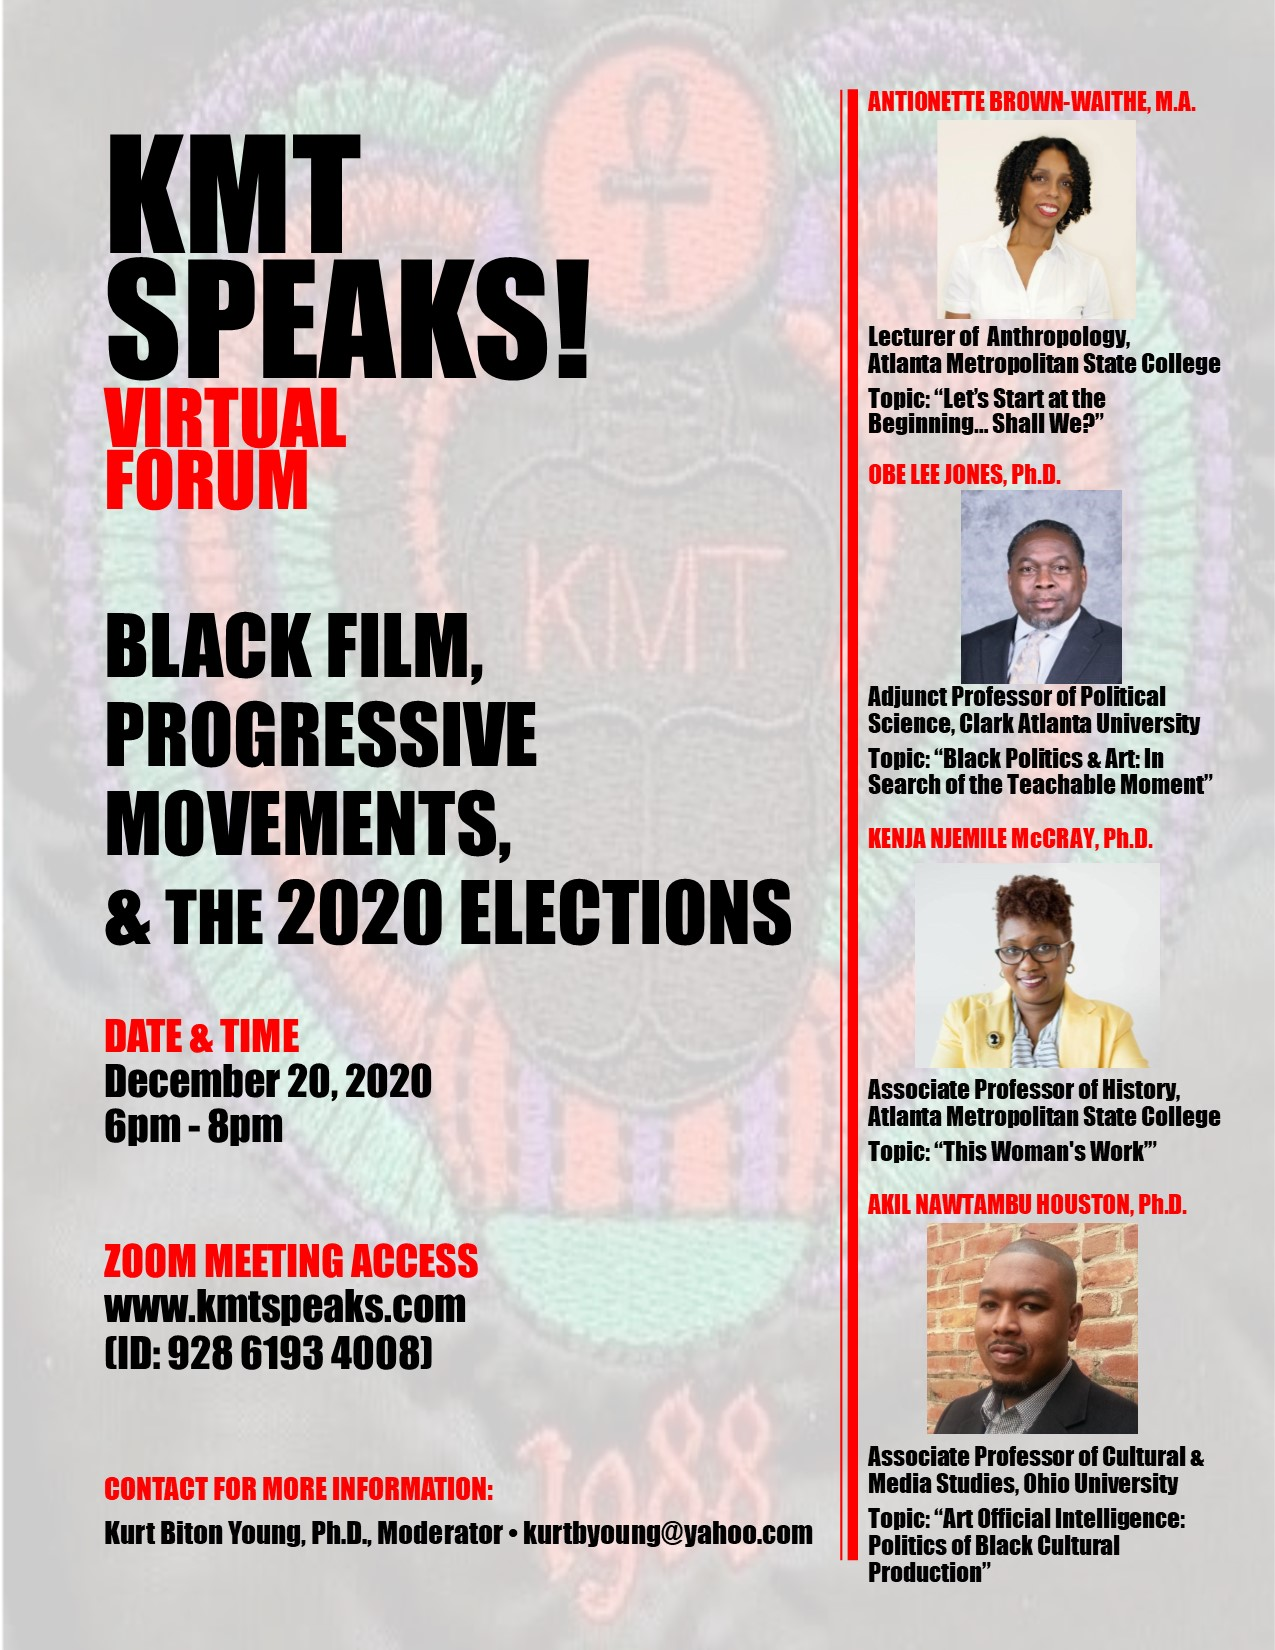 KMT SPEAKS 12-20-2020 flyer (1)